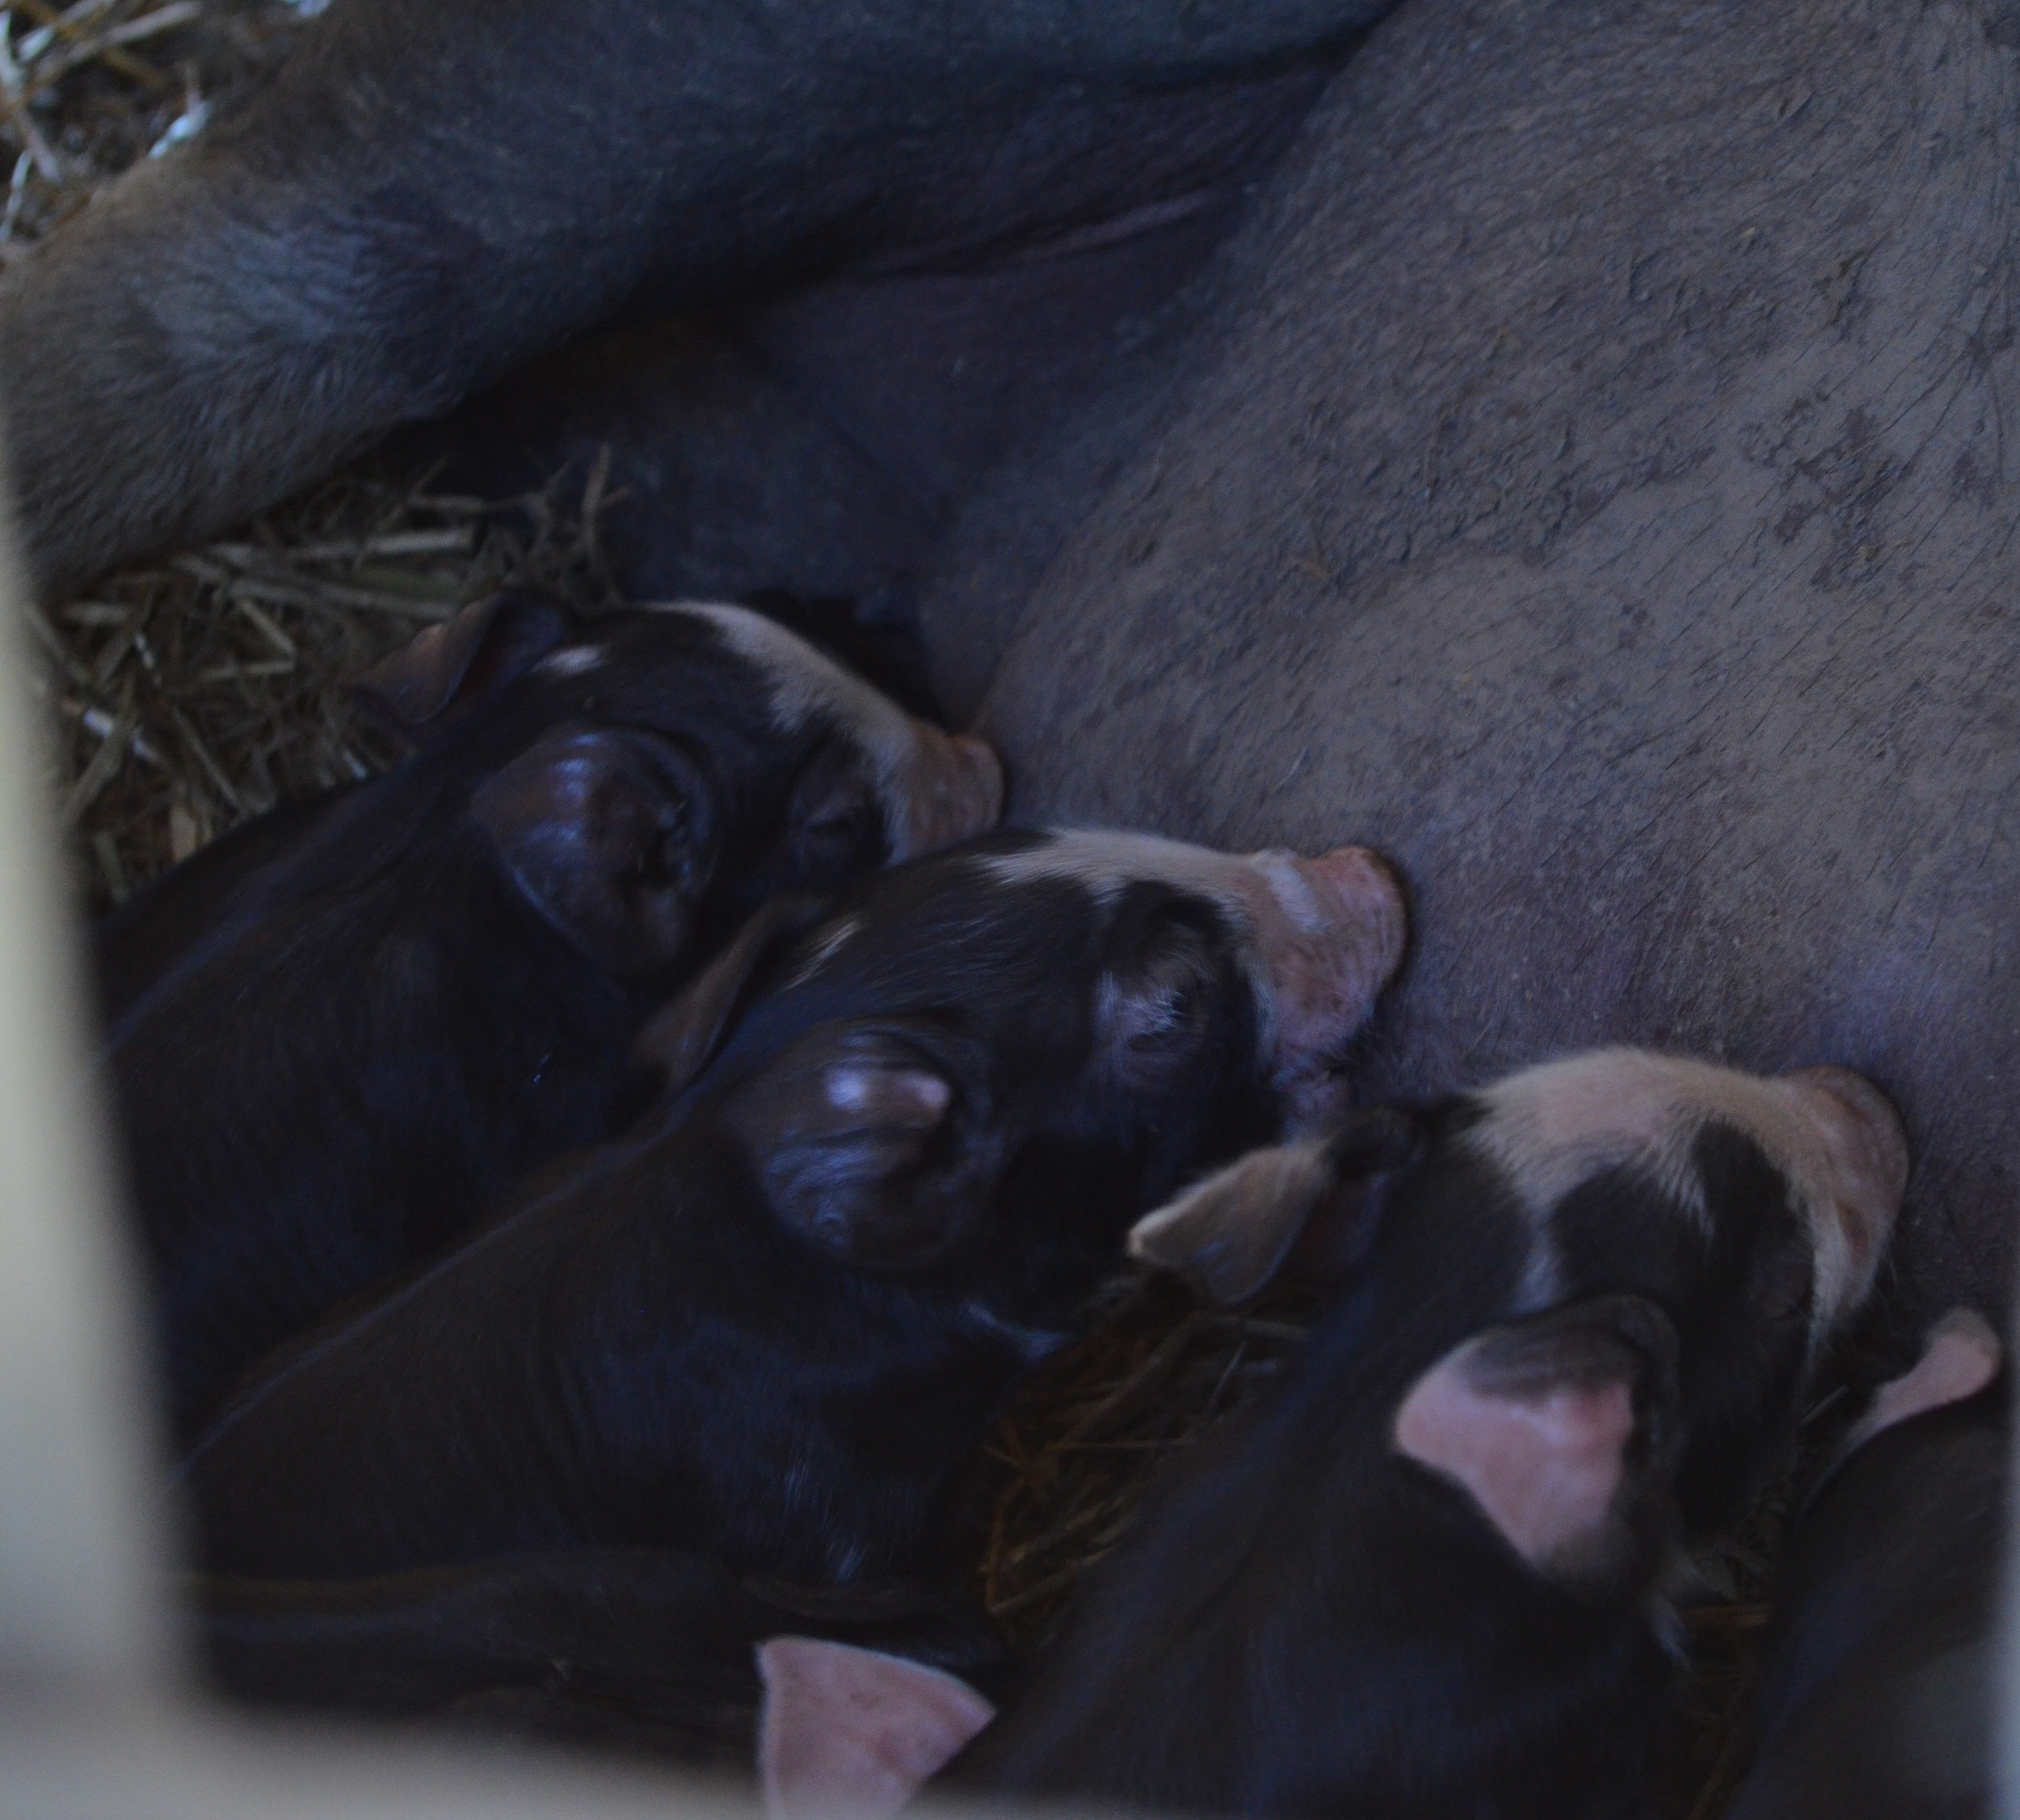 piglets on warporweft.com